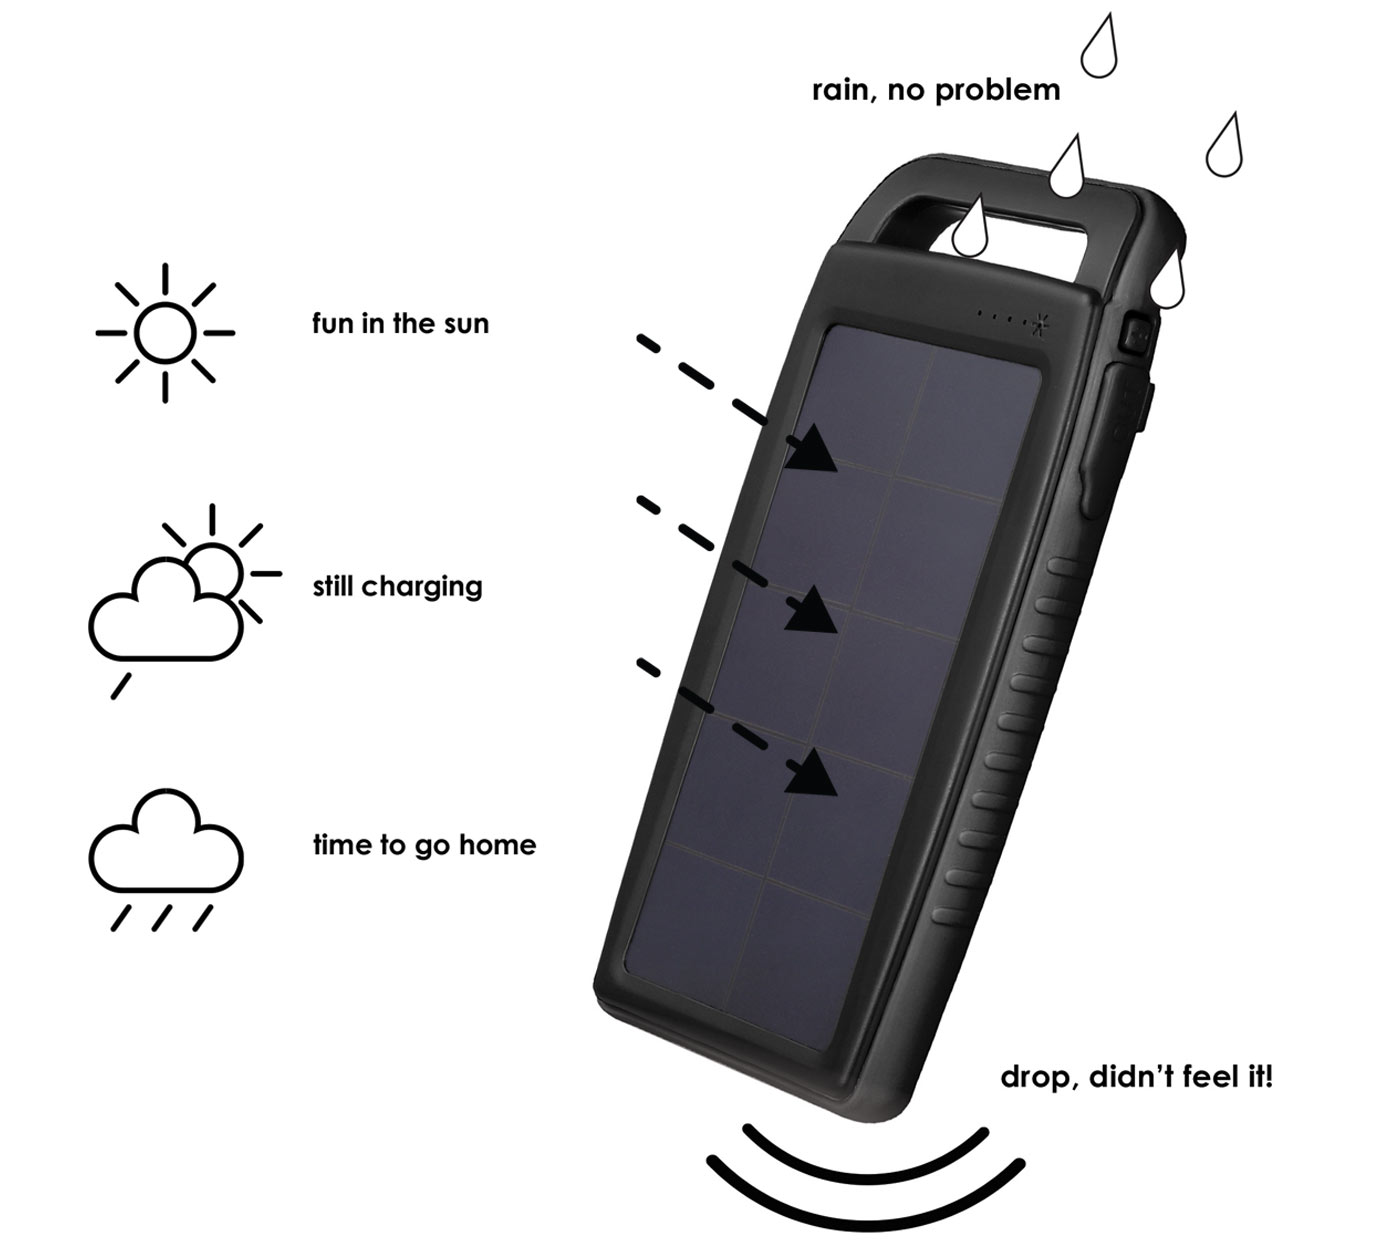 Boompods Waterproof Solar Power Bank | Solaris - power when you need it!